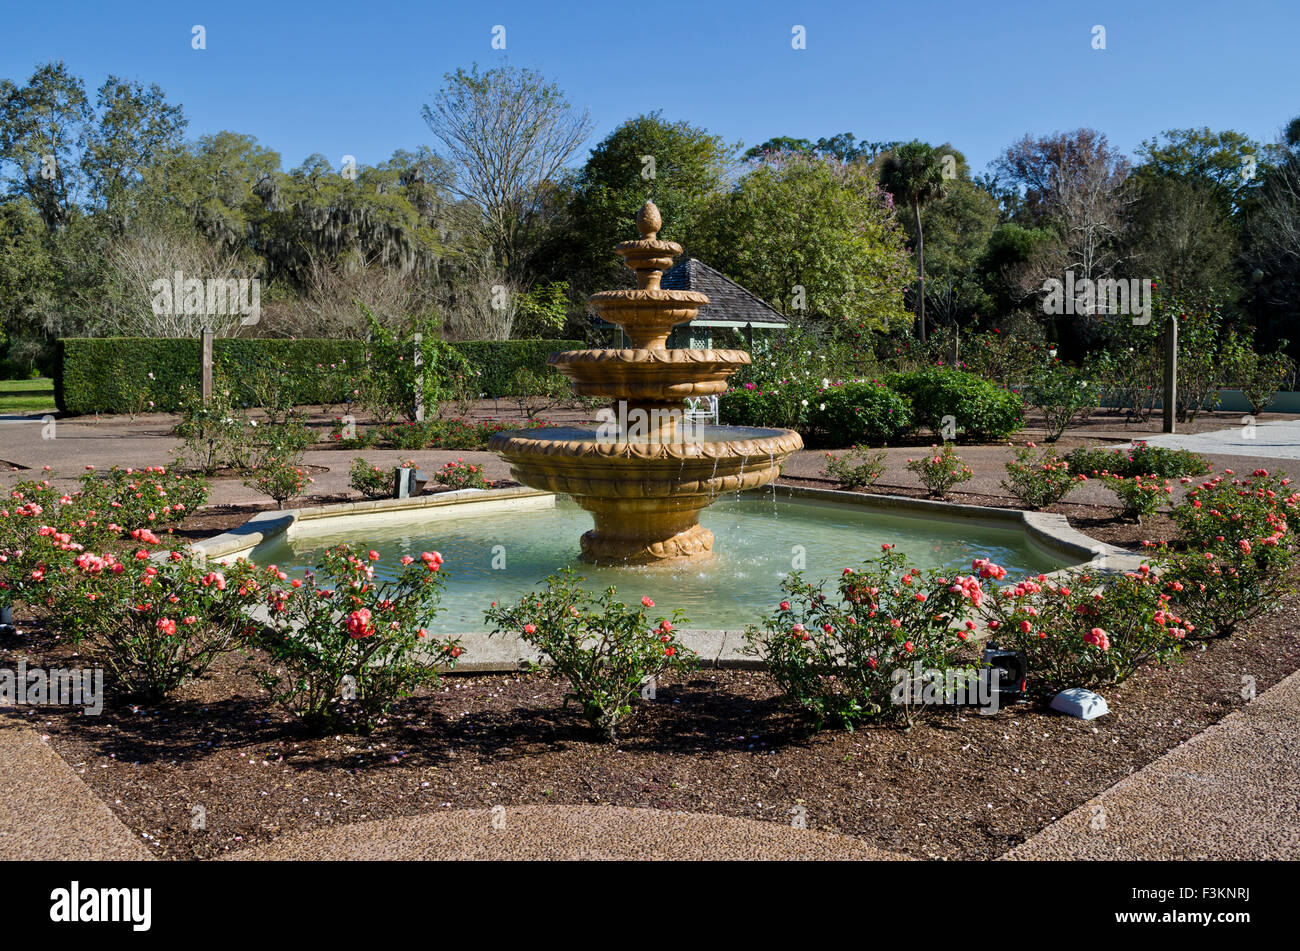 Charmant Fountain At The Harry P. Leu Botanical Gardens In Orlando, Florida. Ornate  Fountains Surrounded By Rose Bushes. February 2015